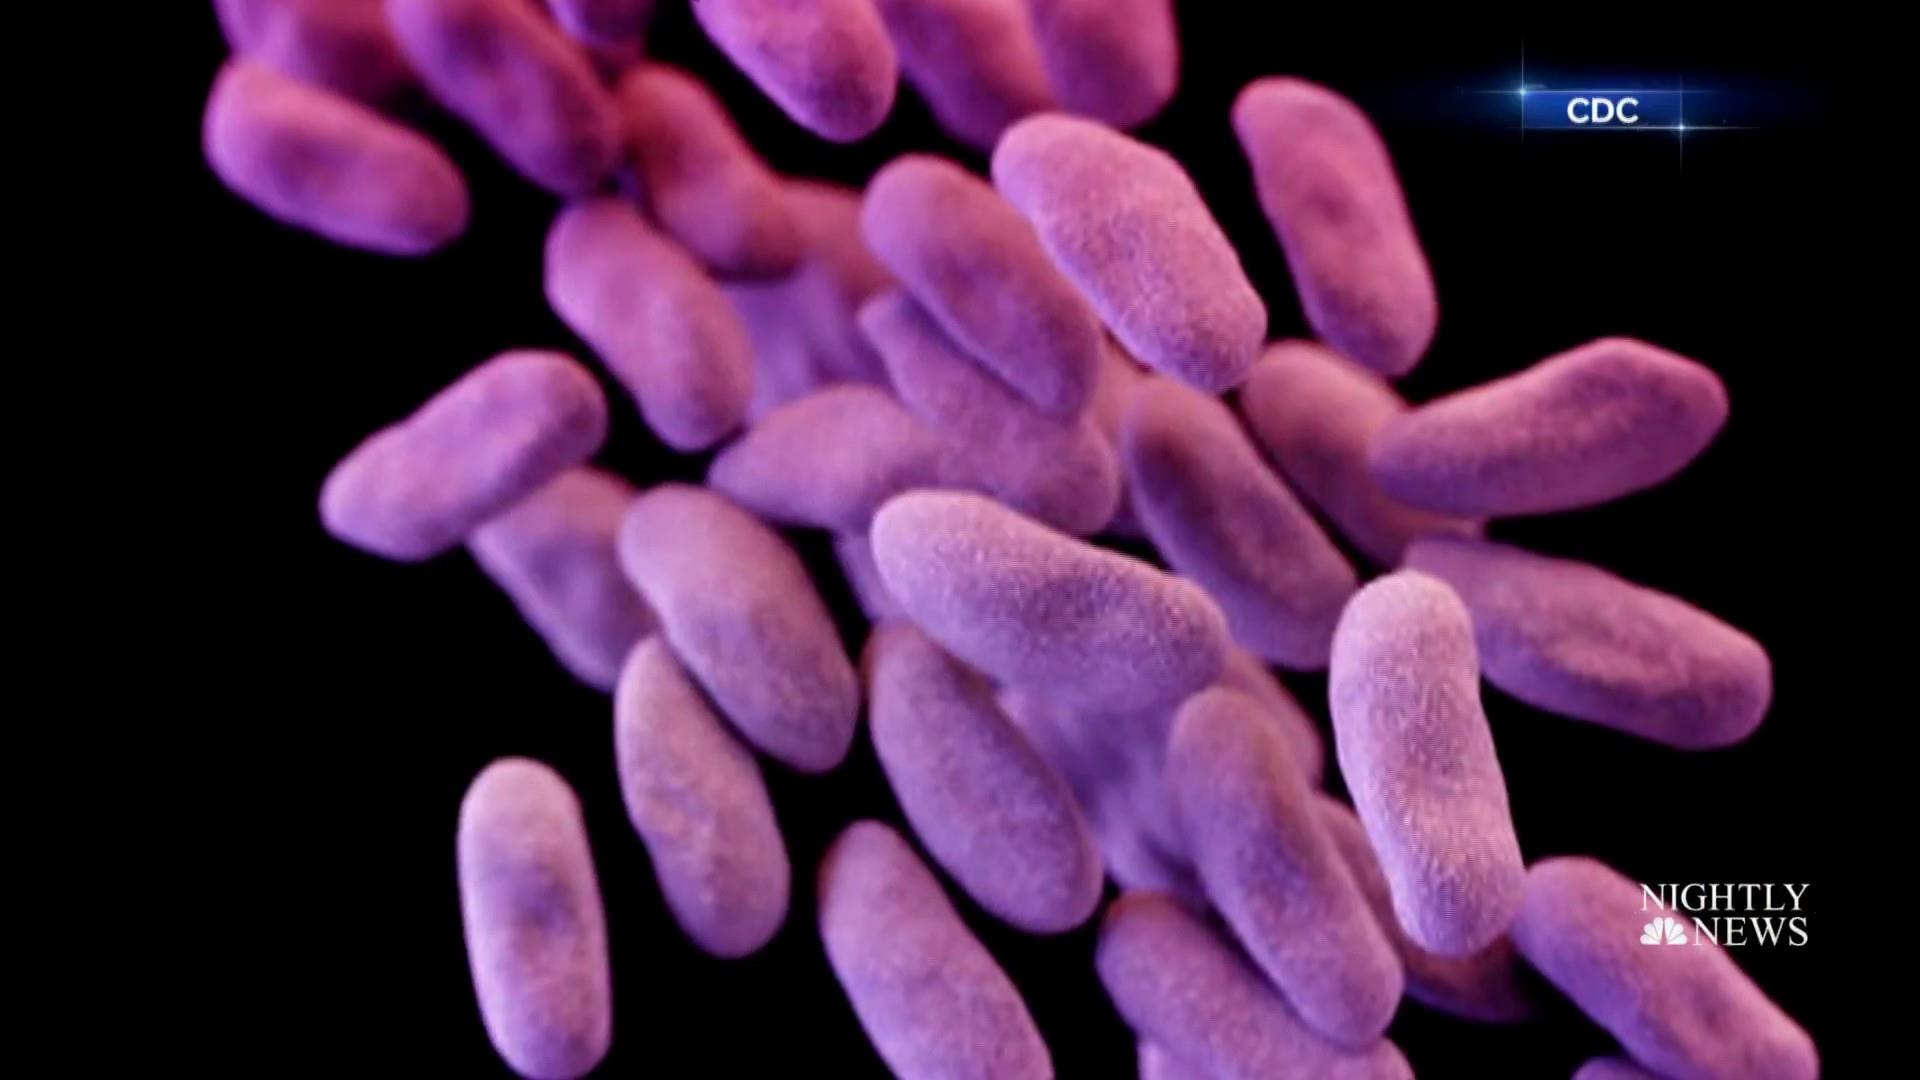 'Nightmare bacteria' are trying to spread in the U.S., CDC says